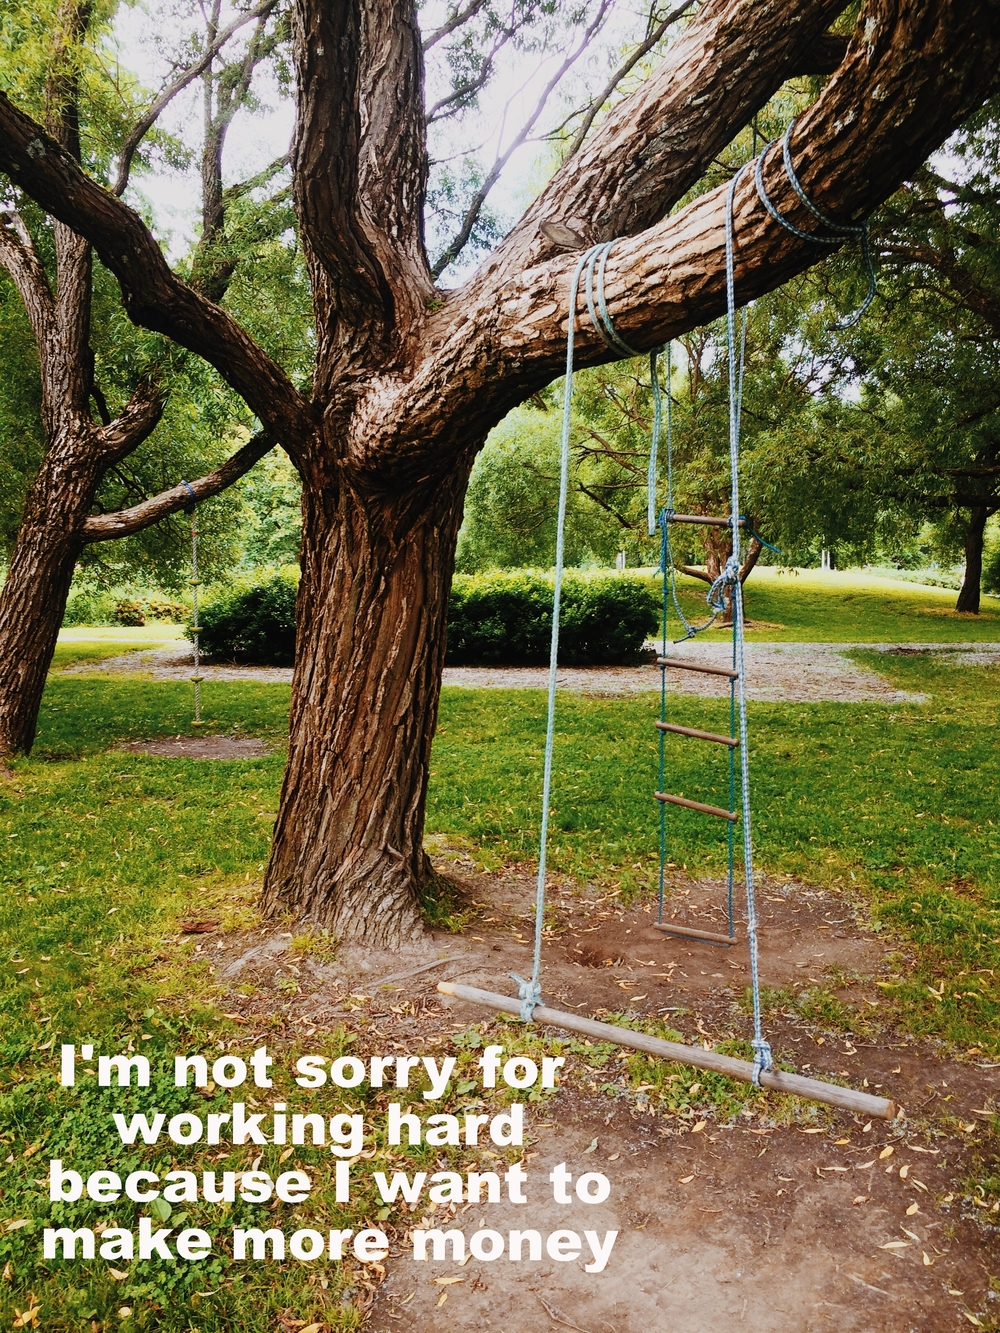 "Stephan March 3 2016 Image of a green park with several large trees. On one tree is a makeshift swing (two ropes tied to a branch with a log in between as a seat) and a hanging ladder. ""I'm not sorry for working hard because I want to make more money"" is overlaid."